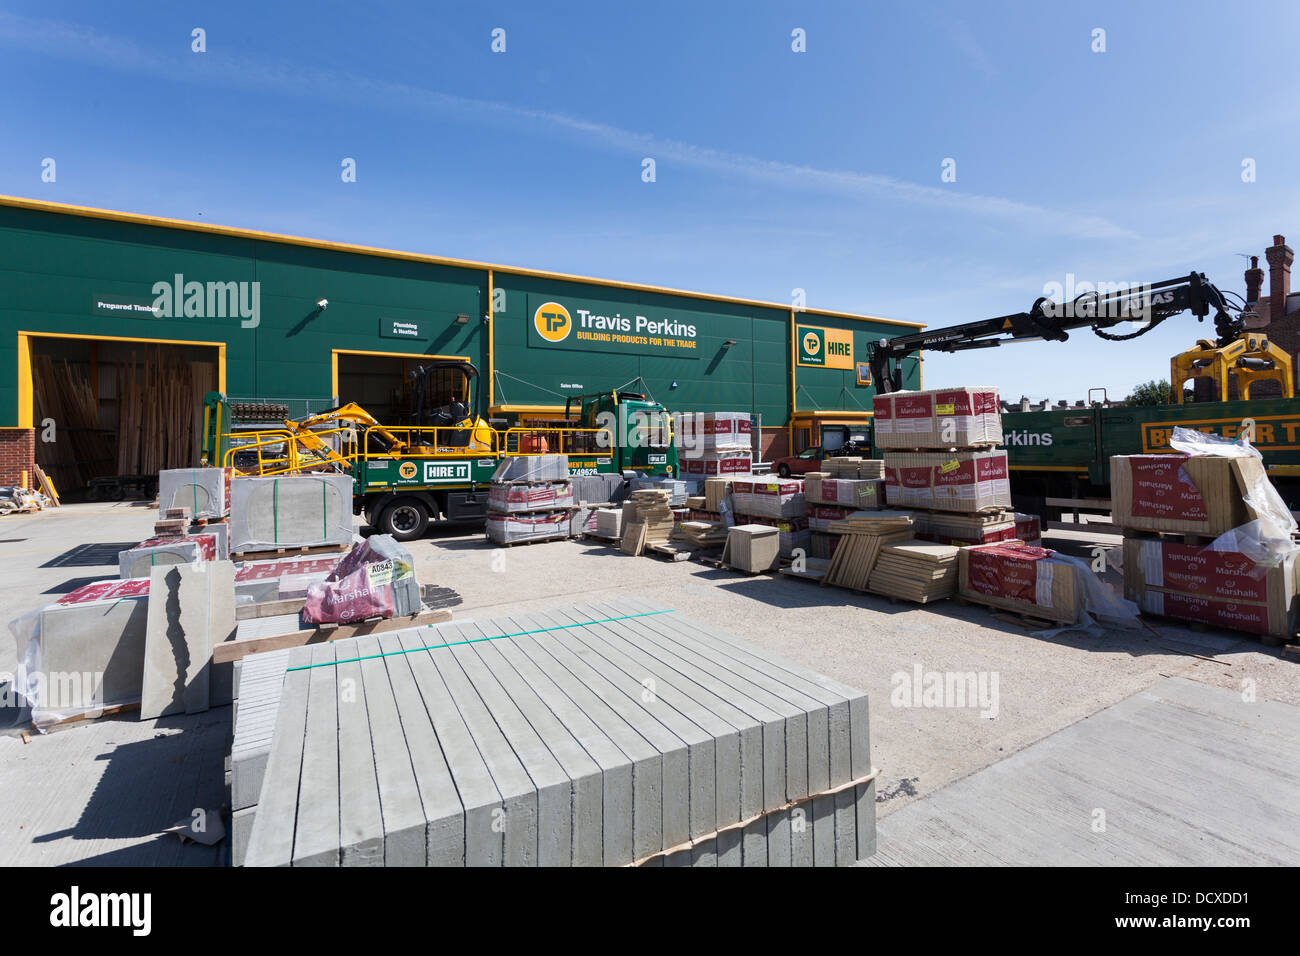 Builders merchant stock photos builders merchant stock images travis perkins littlehampton builders merchant yard stock image baanklon Choice Image